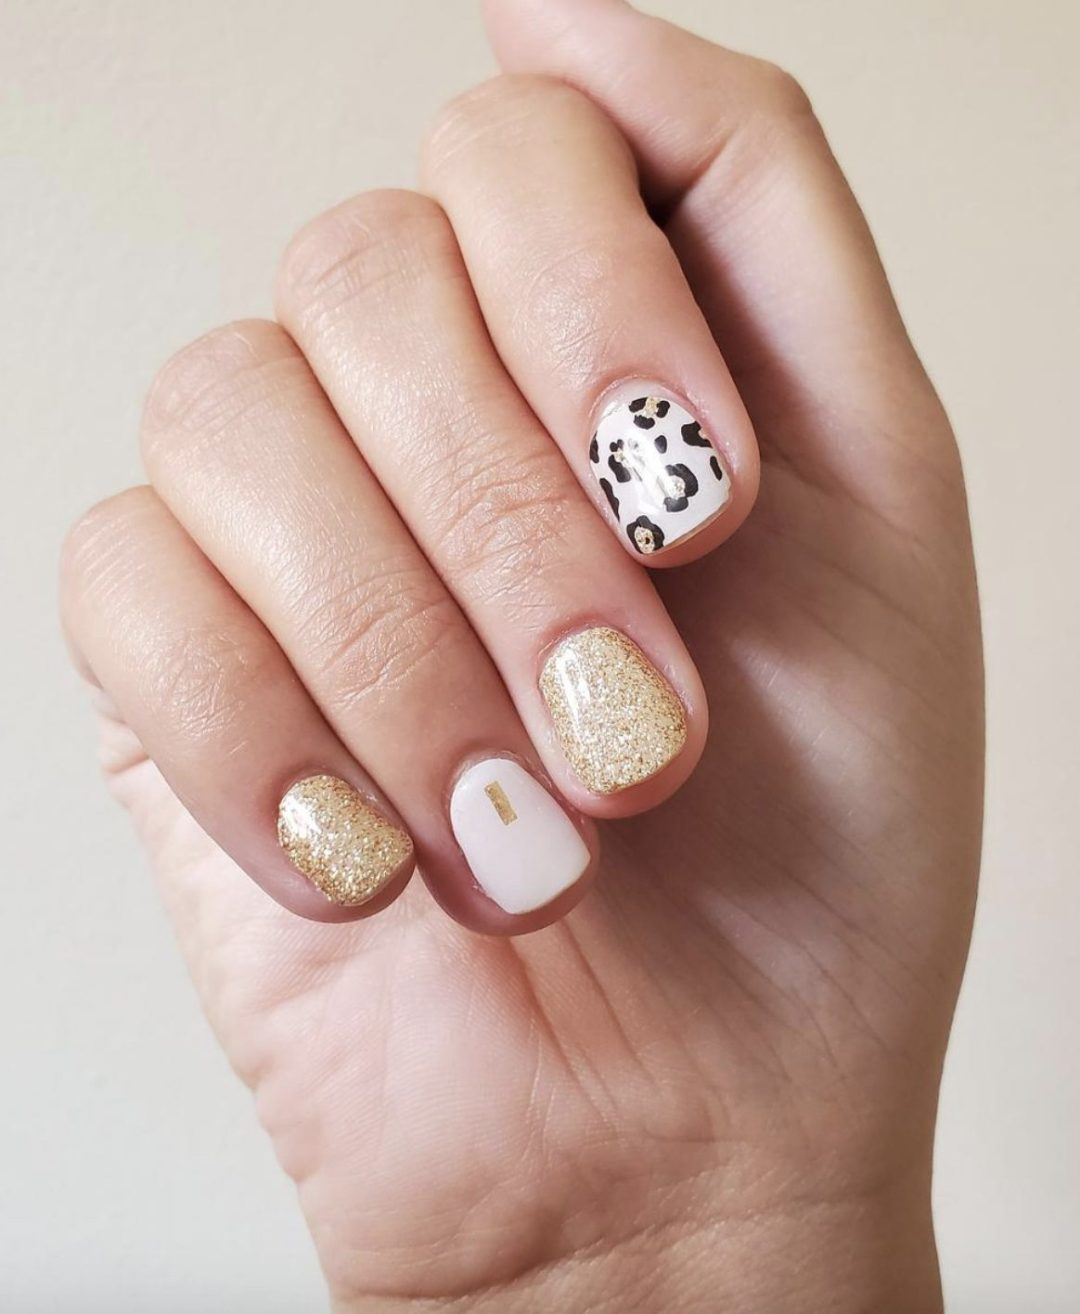 Short pink and gold leopard nail wraps